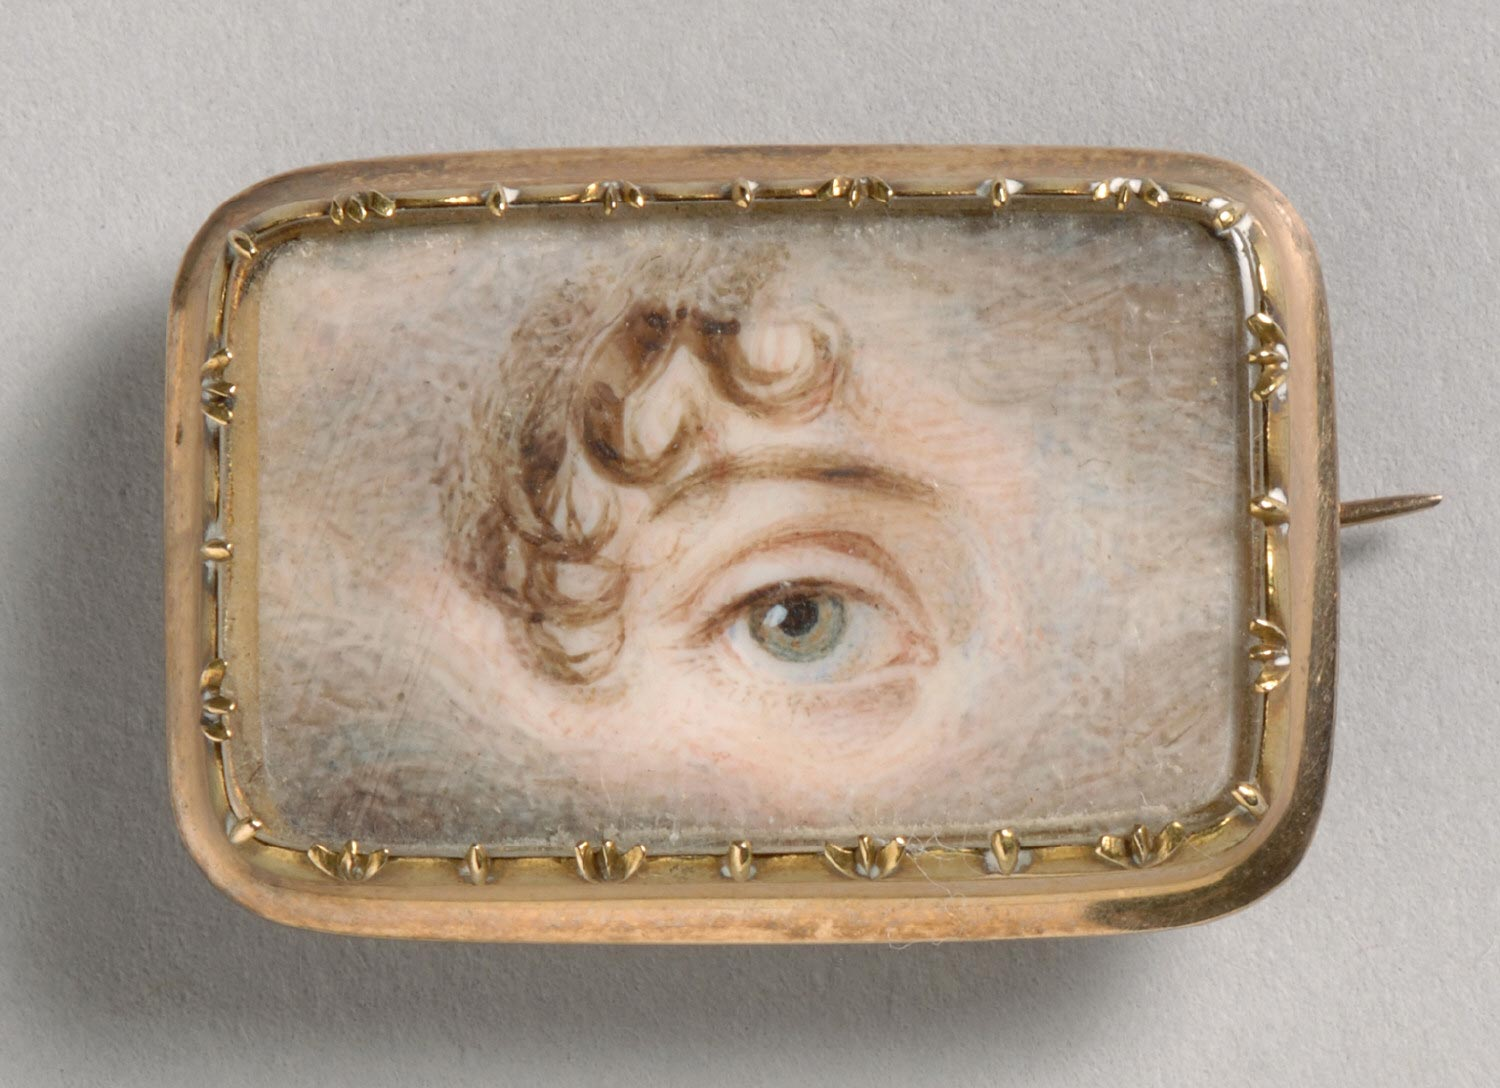 Portrait of a Woman's Right Eye